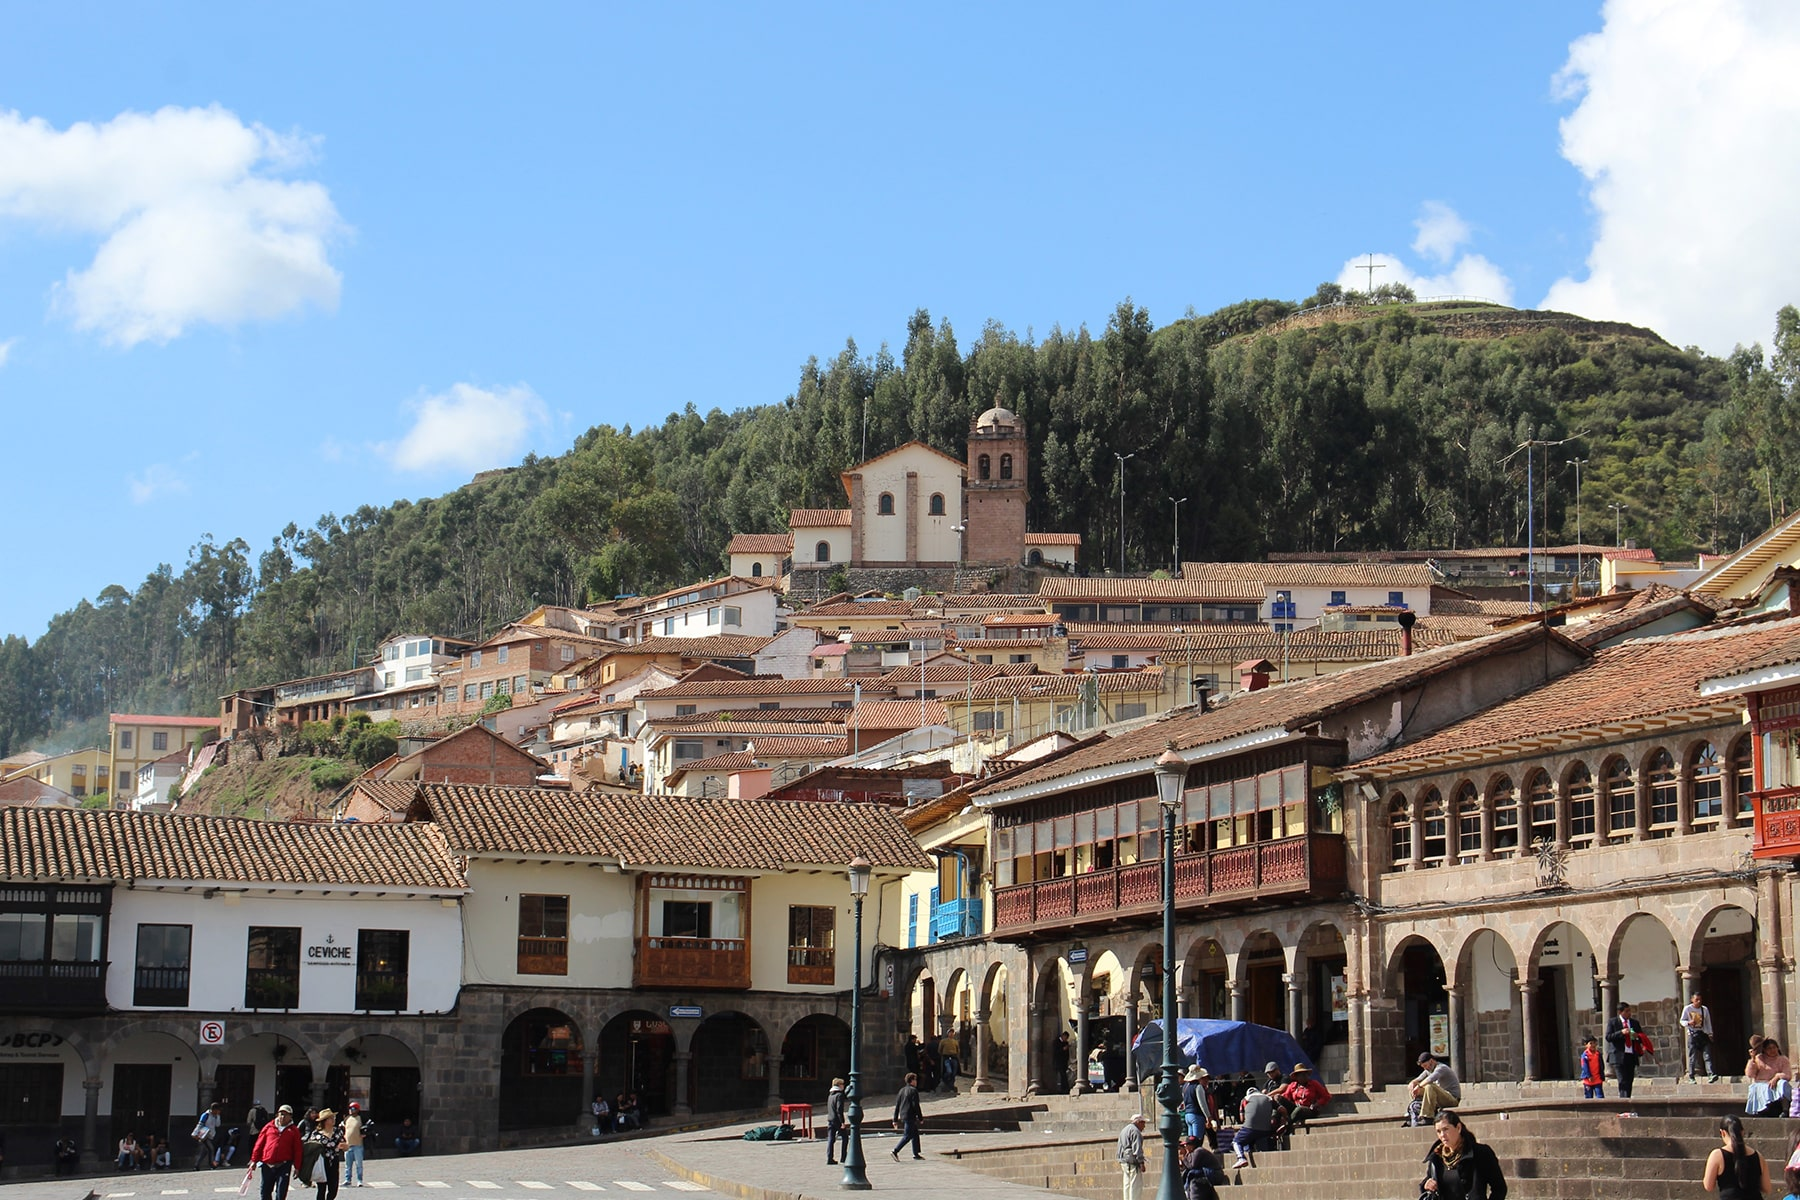 One view of Plaza de Armas Cuzco